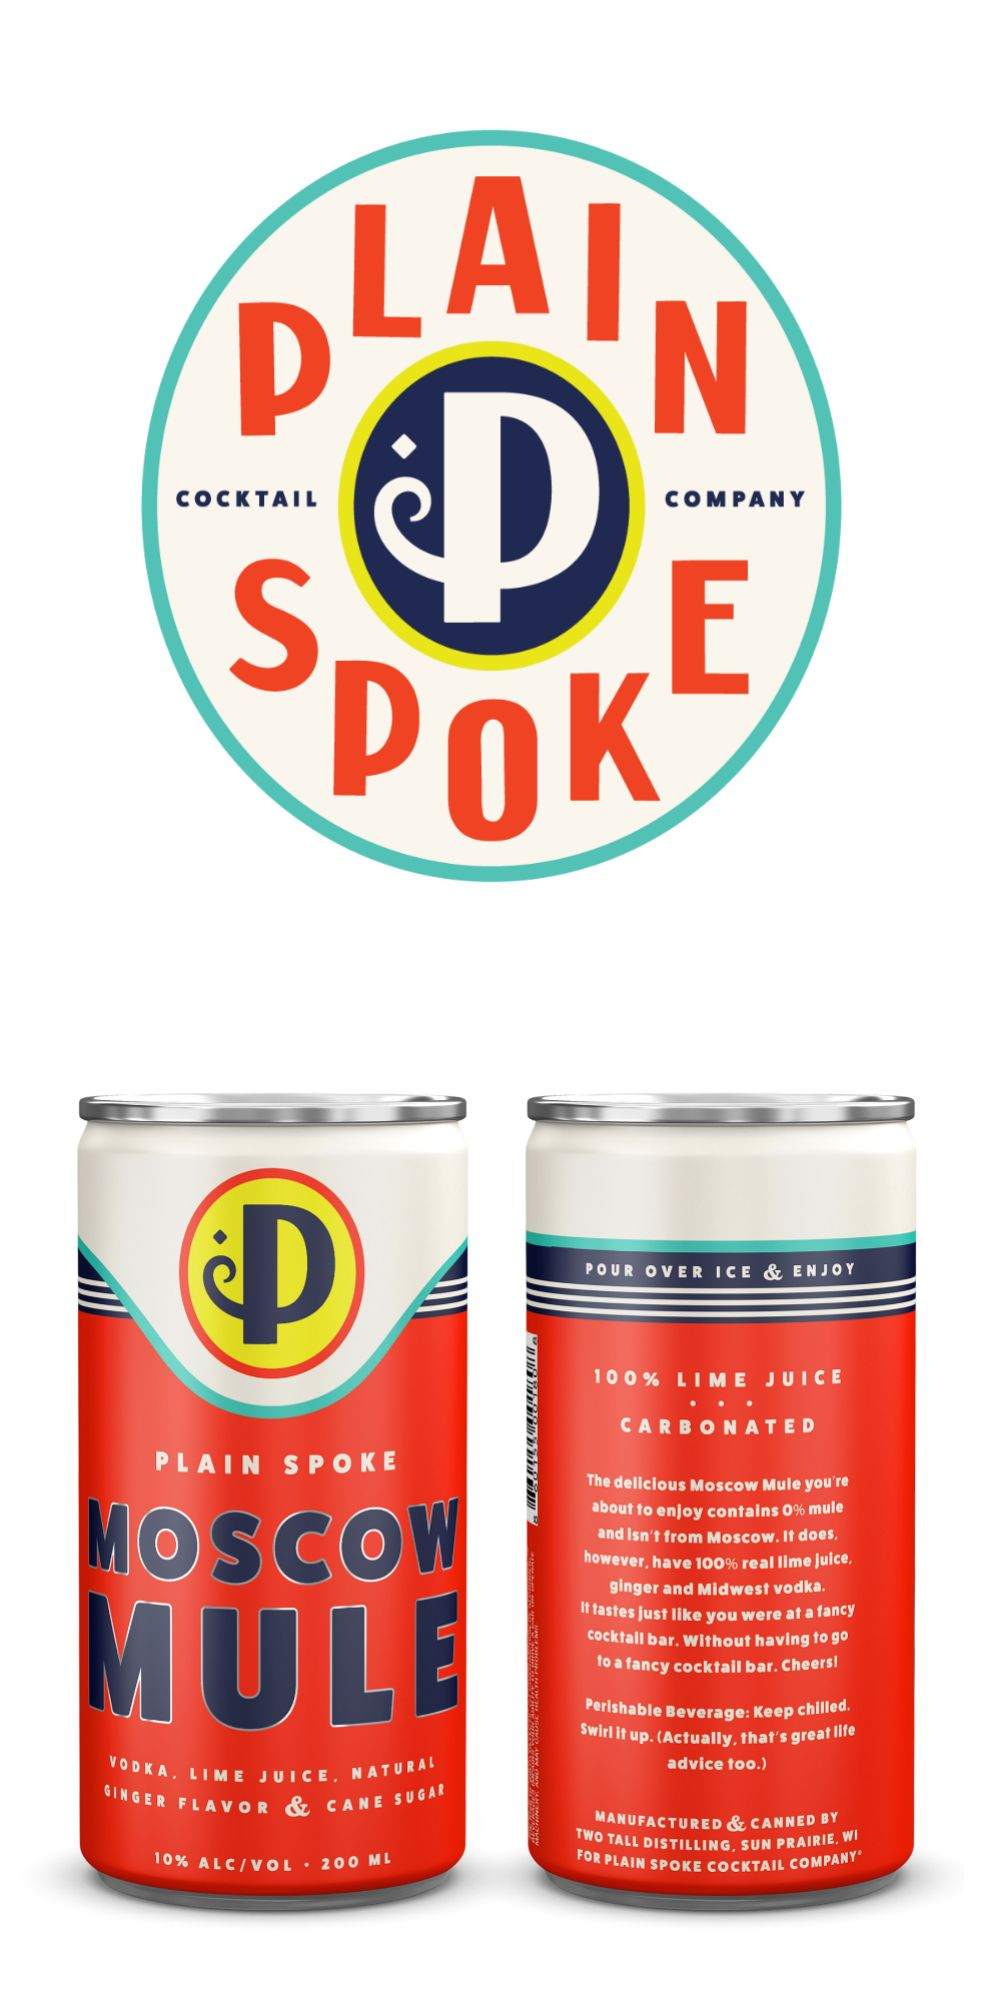 Ready To Drink Cocktails In A Can Branding And Packaging With A Slight Vintage And Midwestern Aesthetic World Brand Design Cocktails In A Can Retro Packaging Drinks Packaging Design